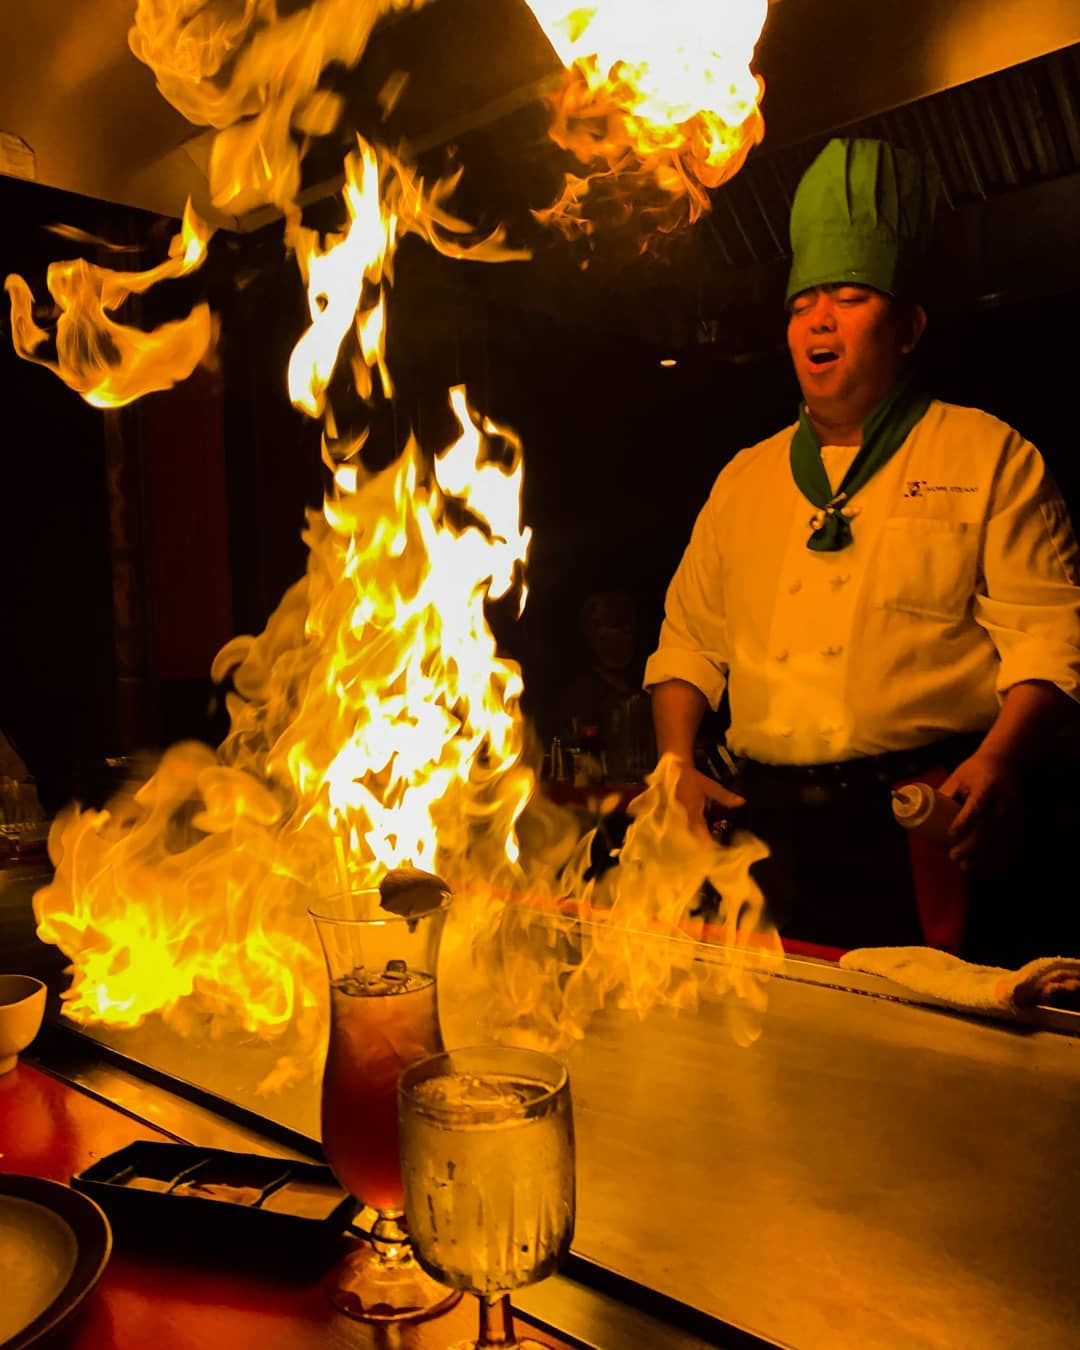 A hibachi chef in white coat and tall green chef's hat stands over a flaming hibachi grill